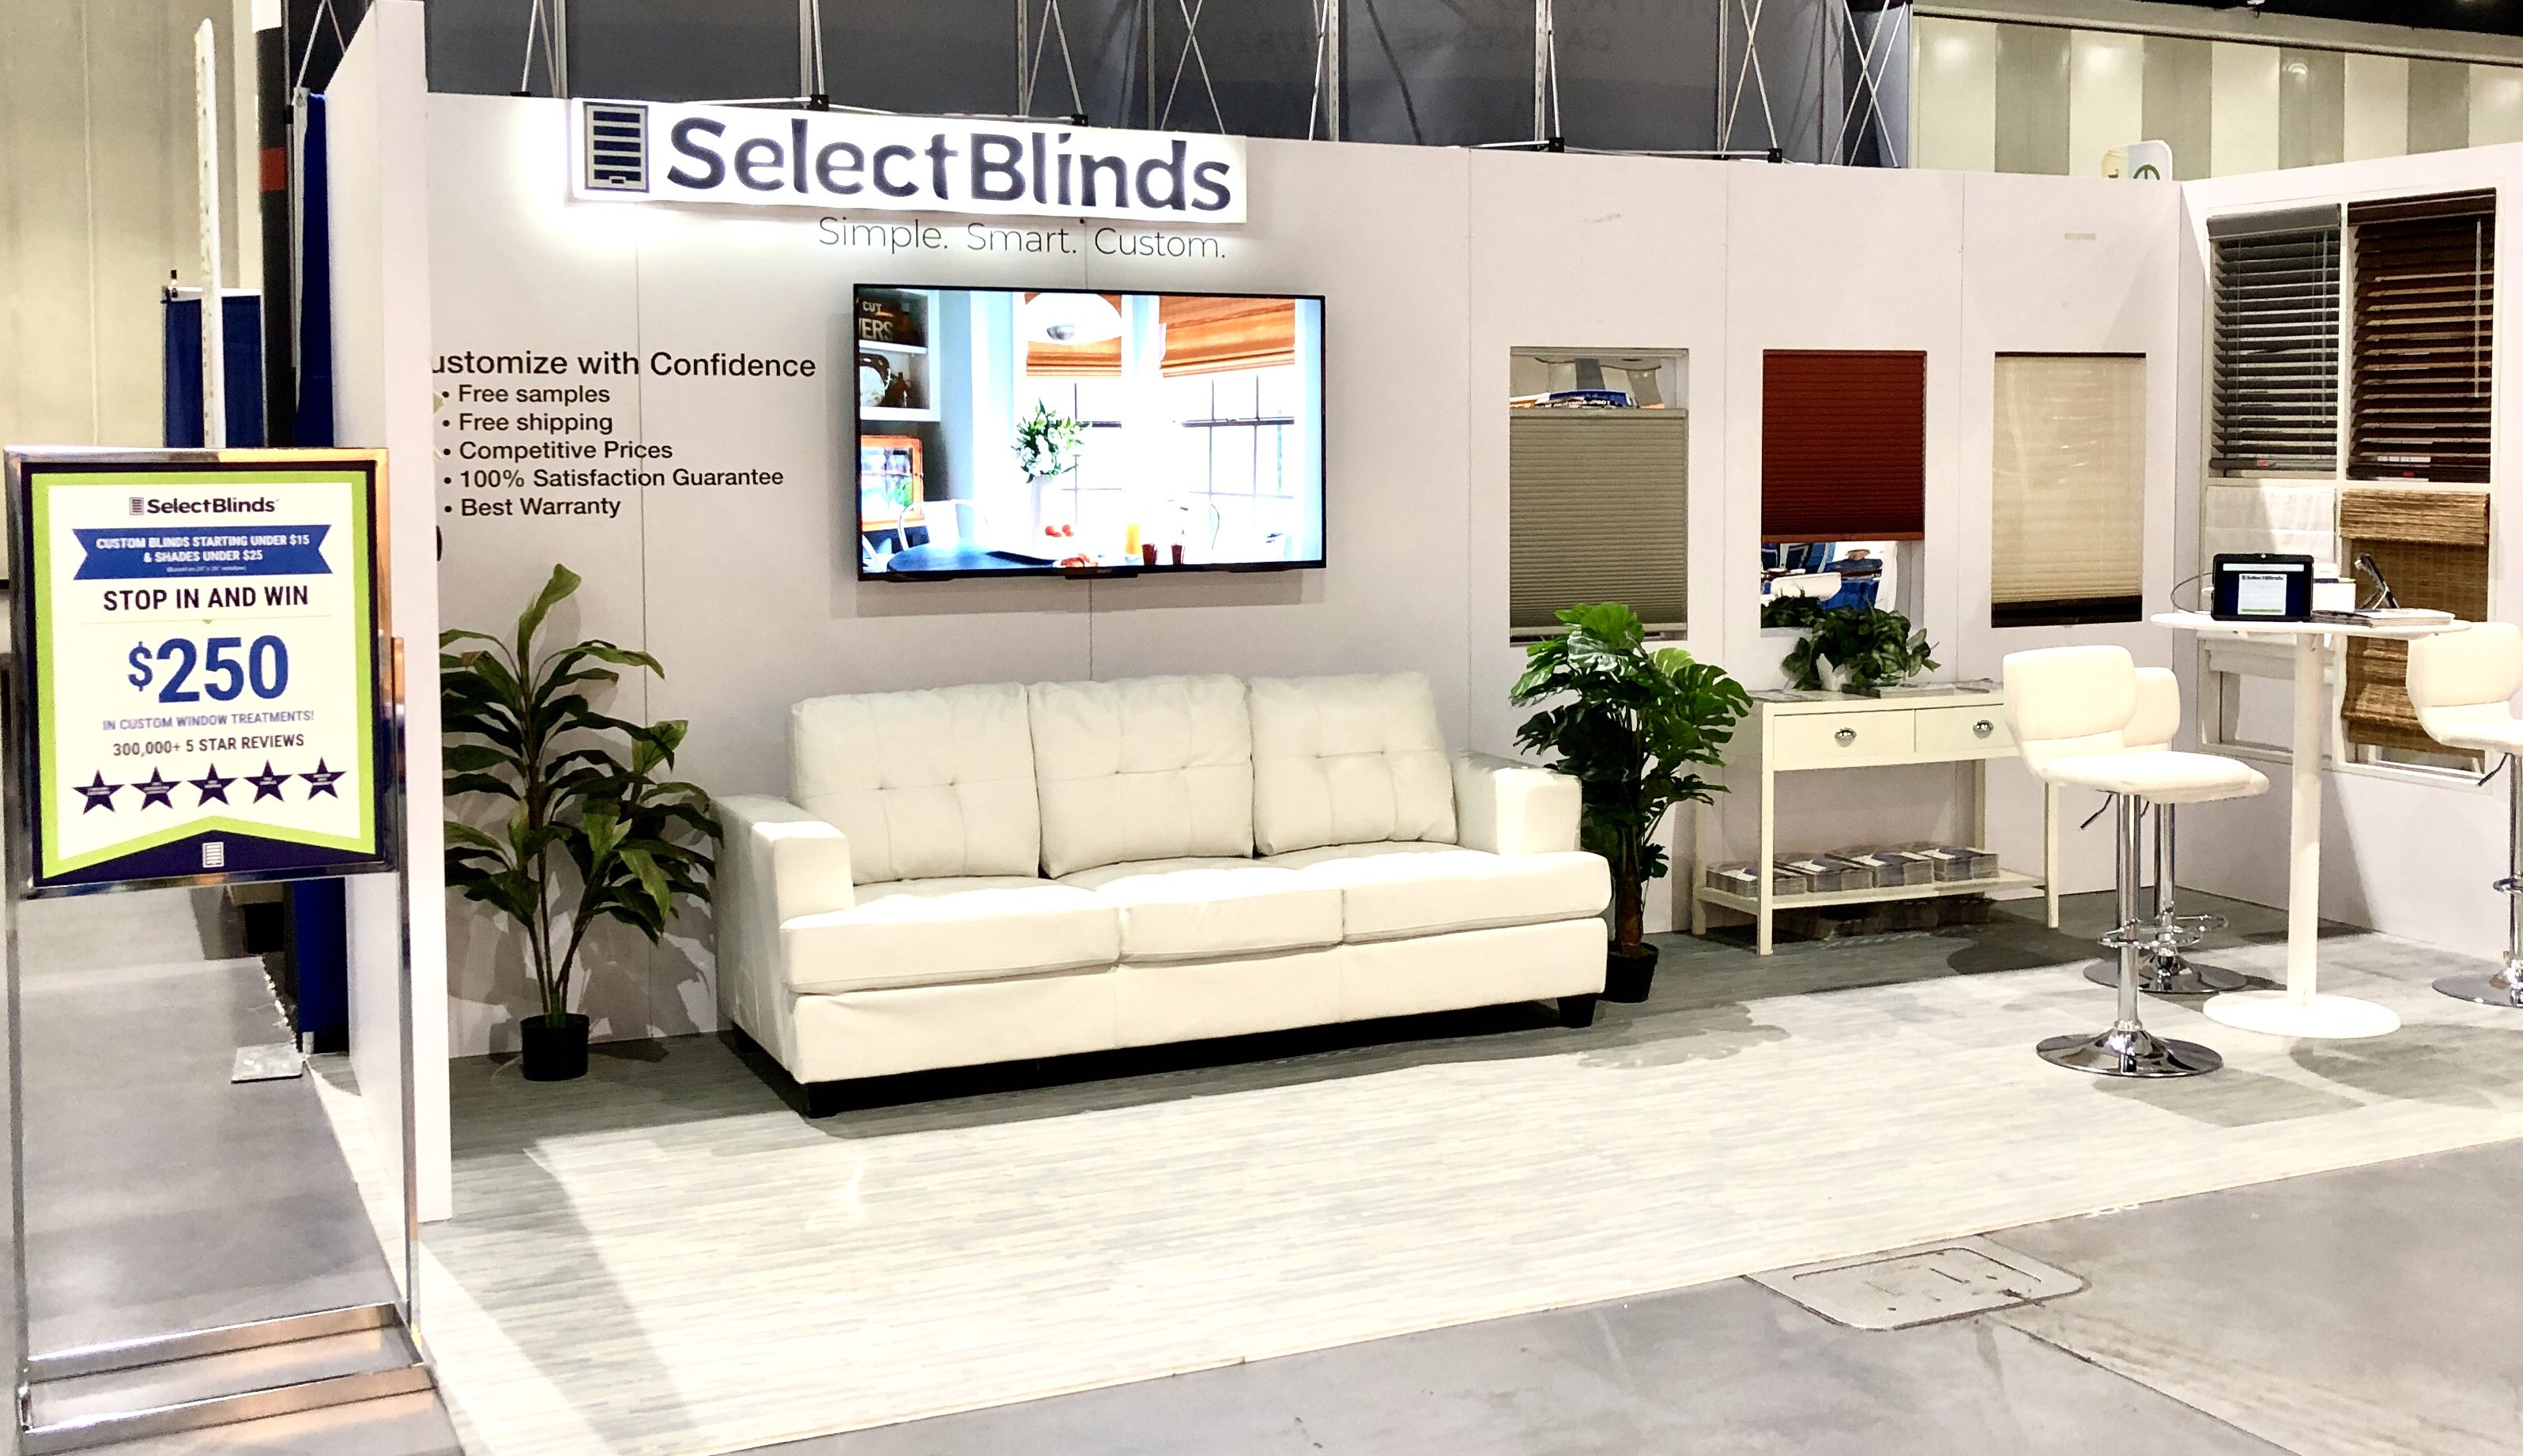 Select Blinds 2019 exhibit booth in San Diego, California